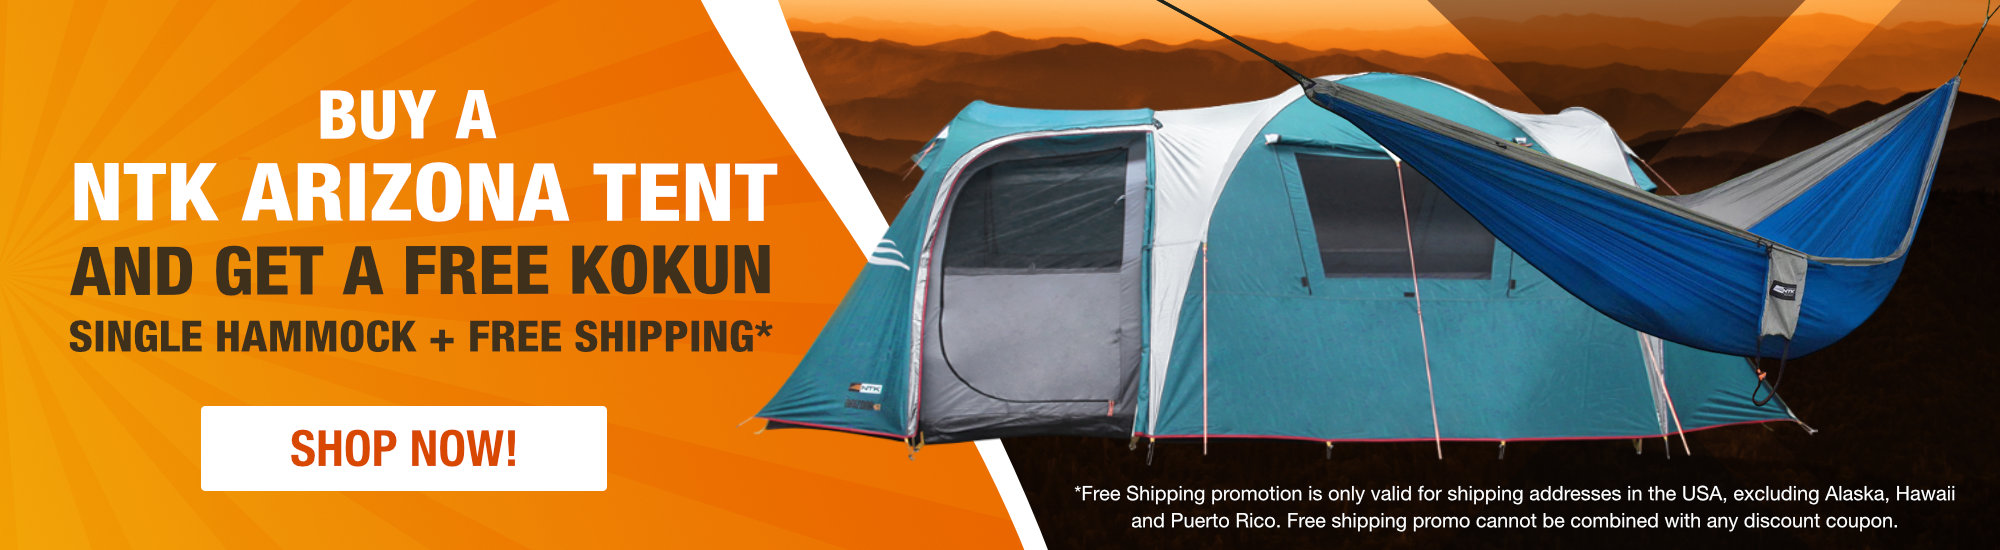 Buy An Arizona Tent and get a free Kokun single hammockBuy An Arizona Tent and get a free Kokun single hammock